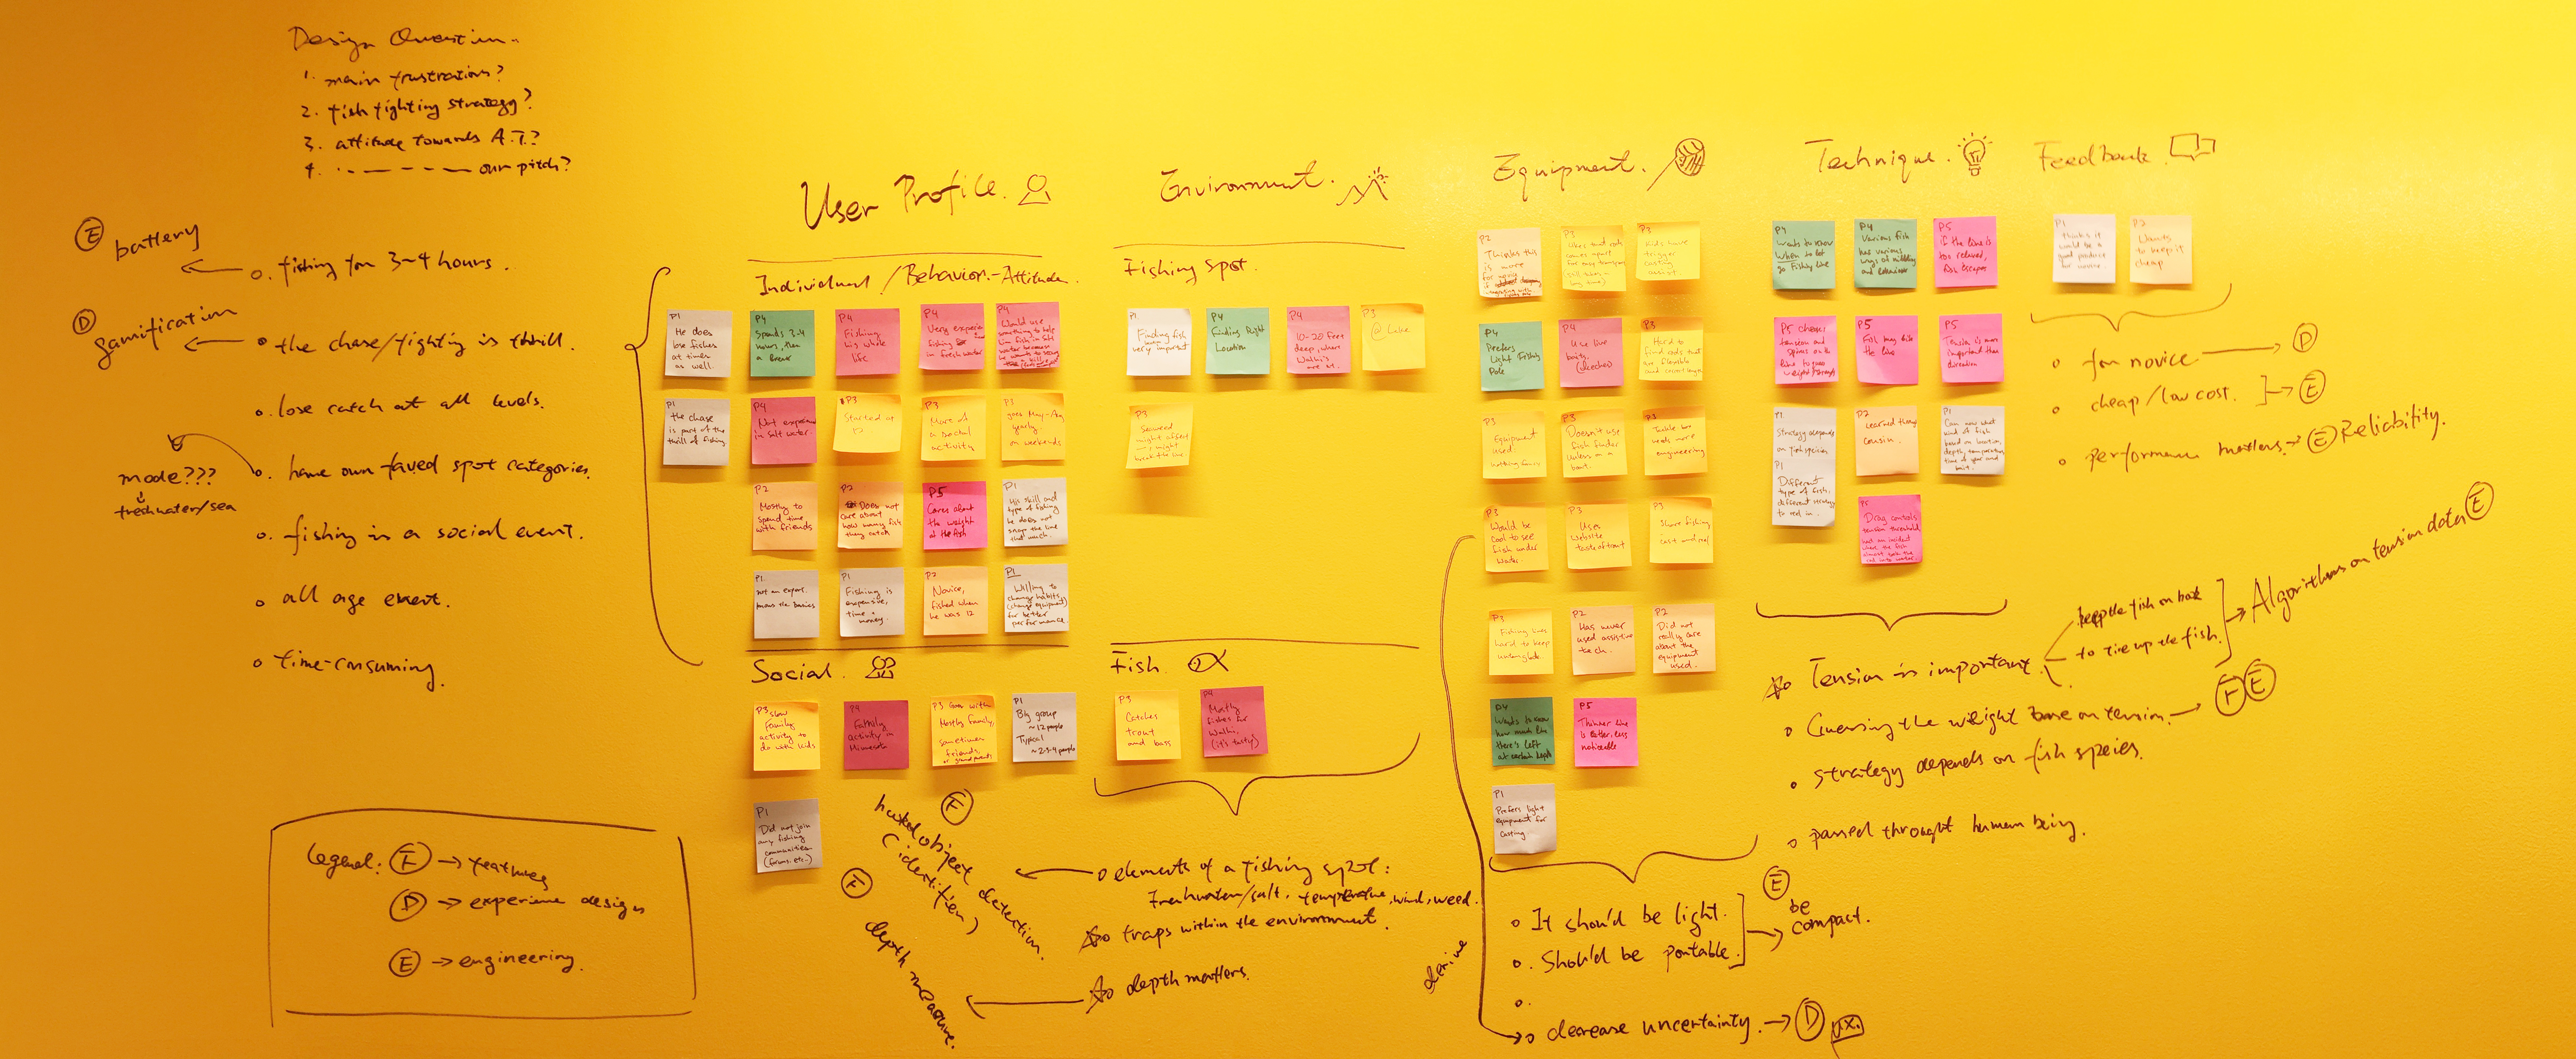 User Research analysis